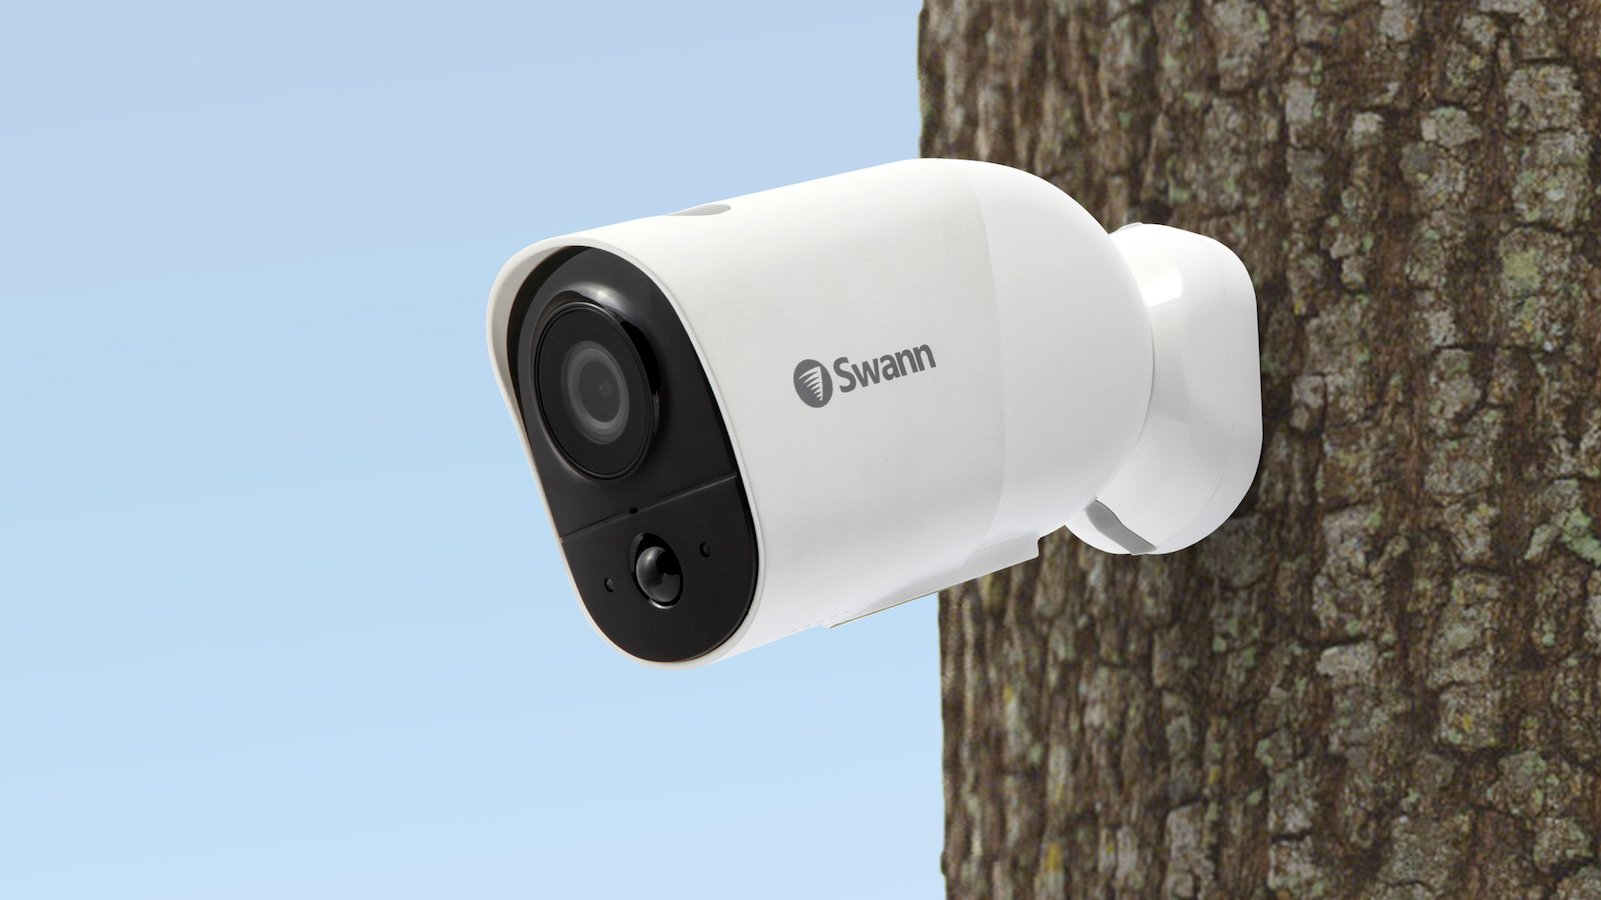 Swann Xtreem wireless outdoor security camera offers mobile alerts, 2-way talk, and more